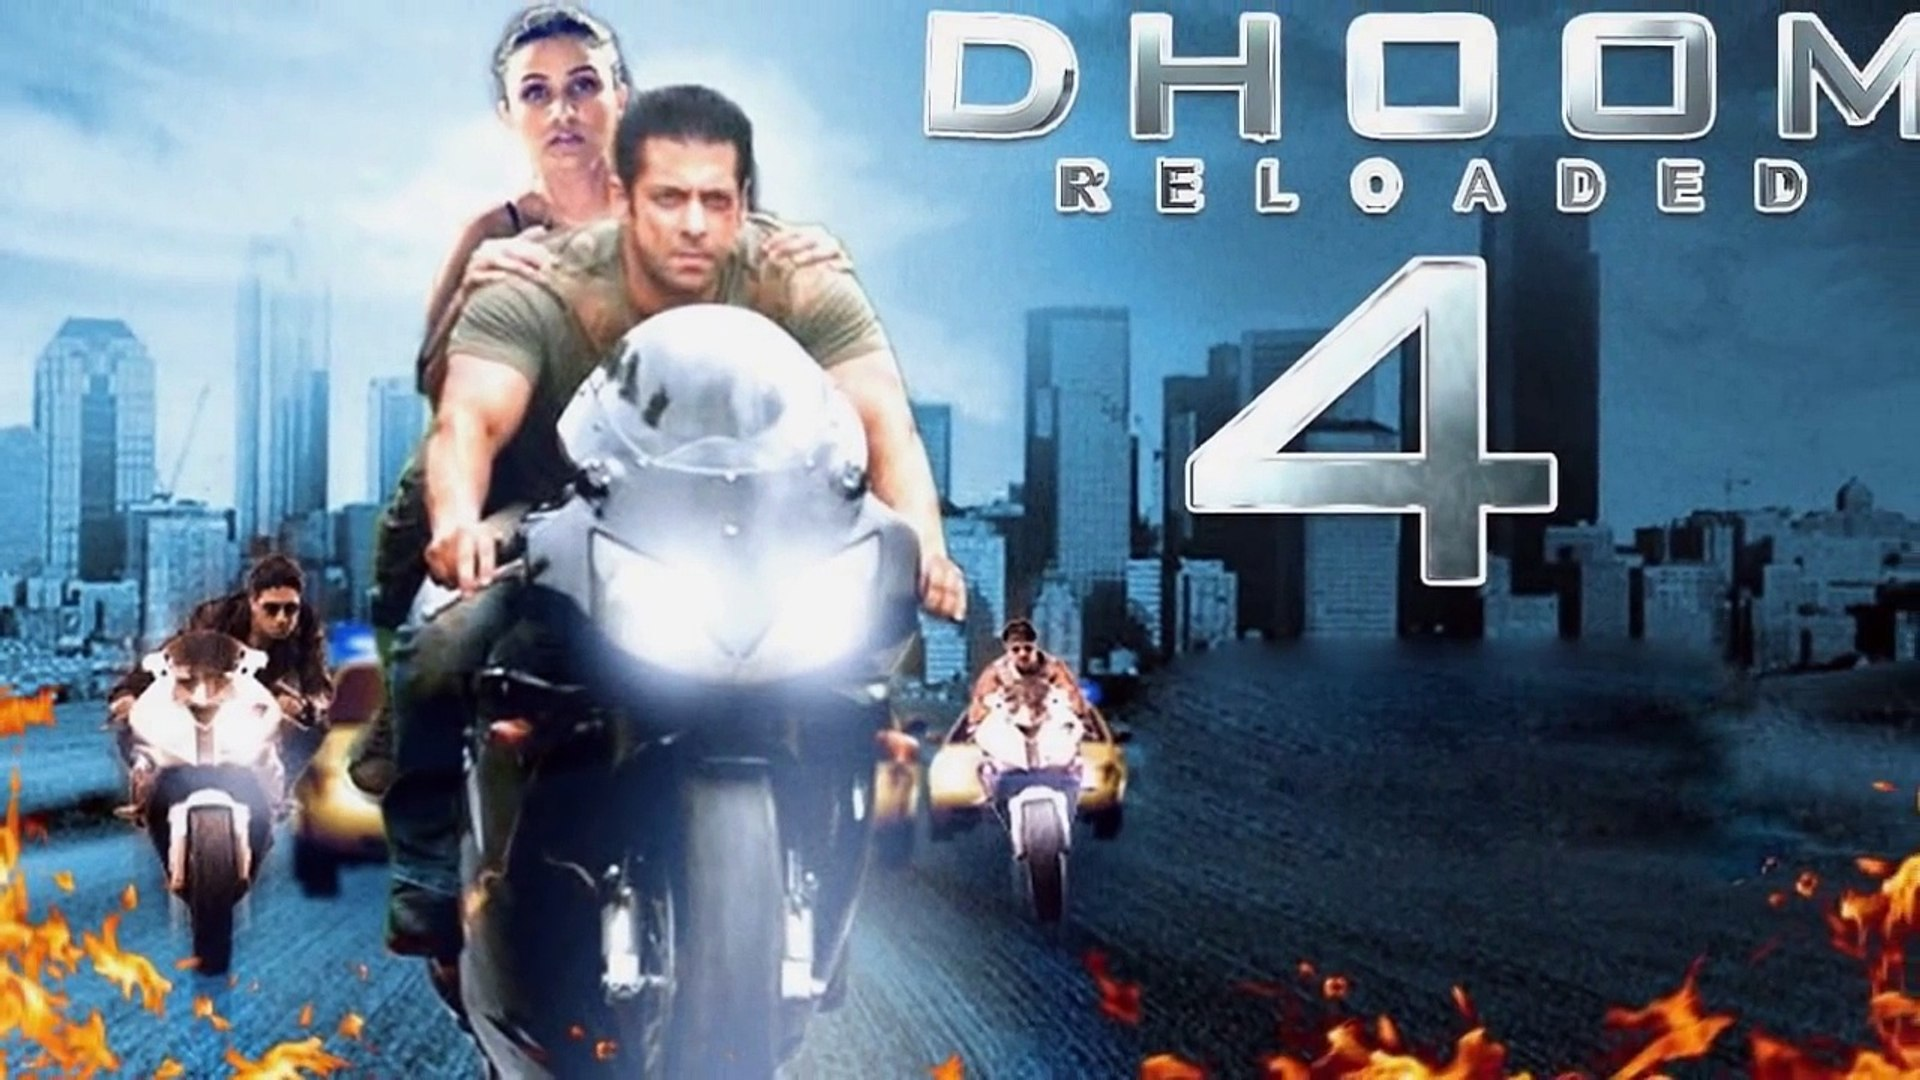 dhoom 4 full trailer movie free download mp4   hd